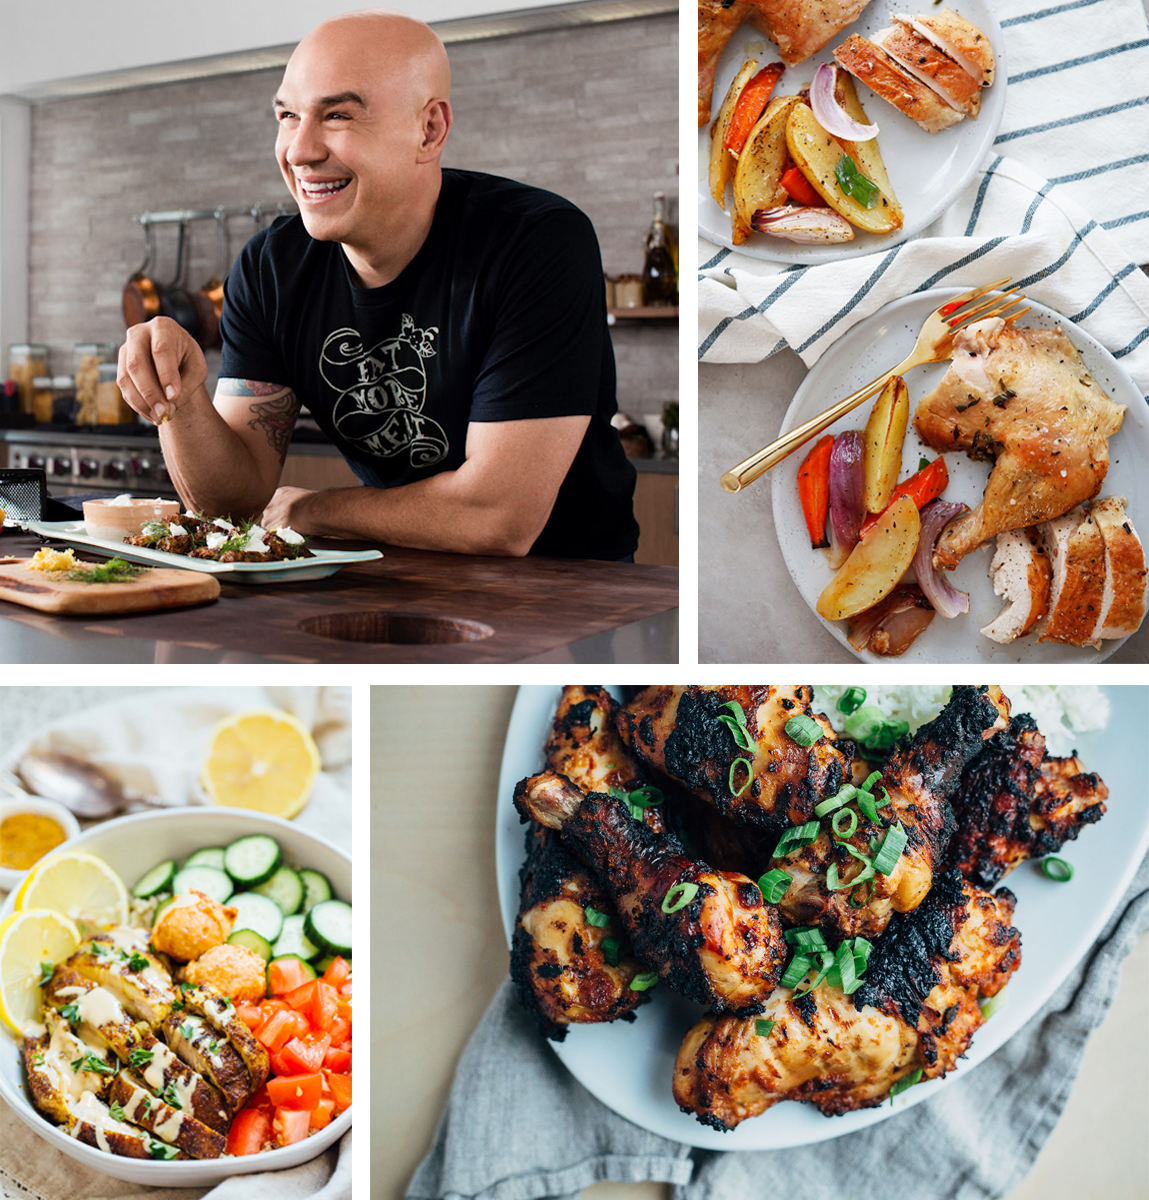 (top left) Chef Michael Symon has developed  several recipes  exclusively for SVO using Farmer Focus Chicken. (top right)  Roasted Chicken Dinner  recipe by Lexi's Clean Kitchen. (bottom left)  Chicken Shawarma Bowl  recipe by Table for Two. (bottom right)  Korean-Style Grilled Chicken  recipe by Brooklyn Supper.